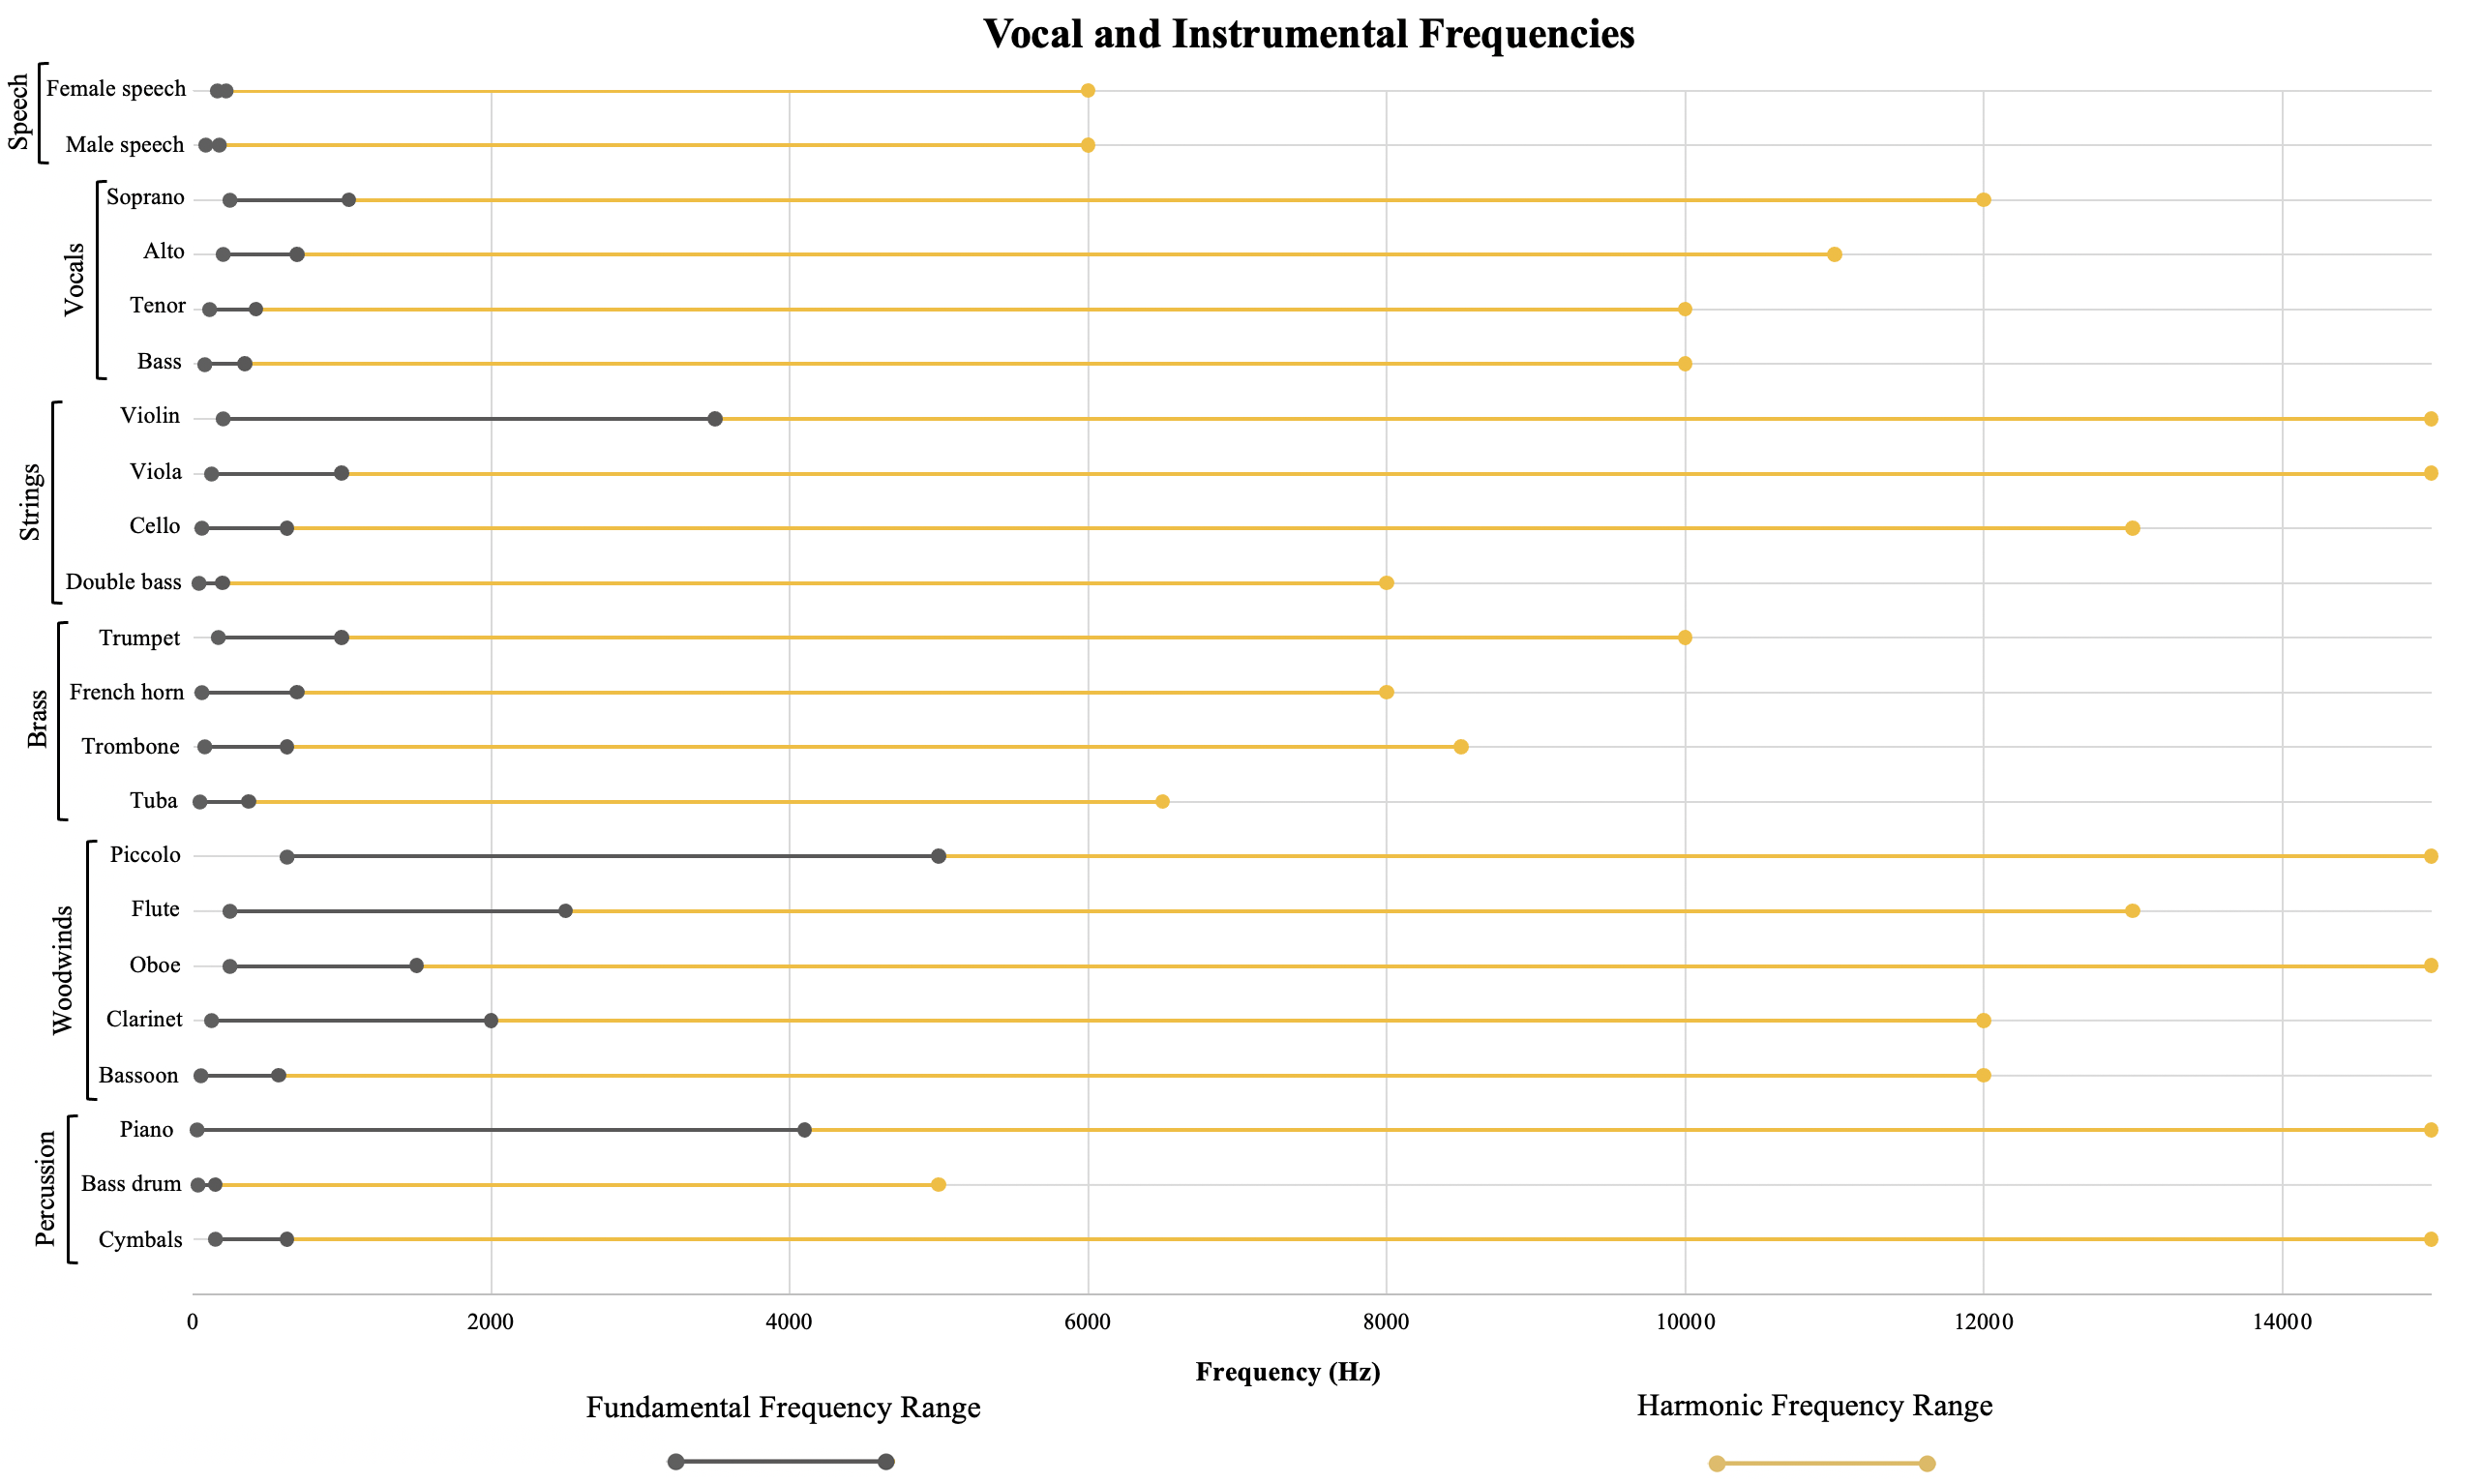 Speech and Musical Instrument Frequencies